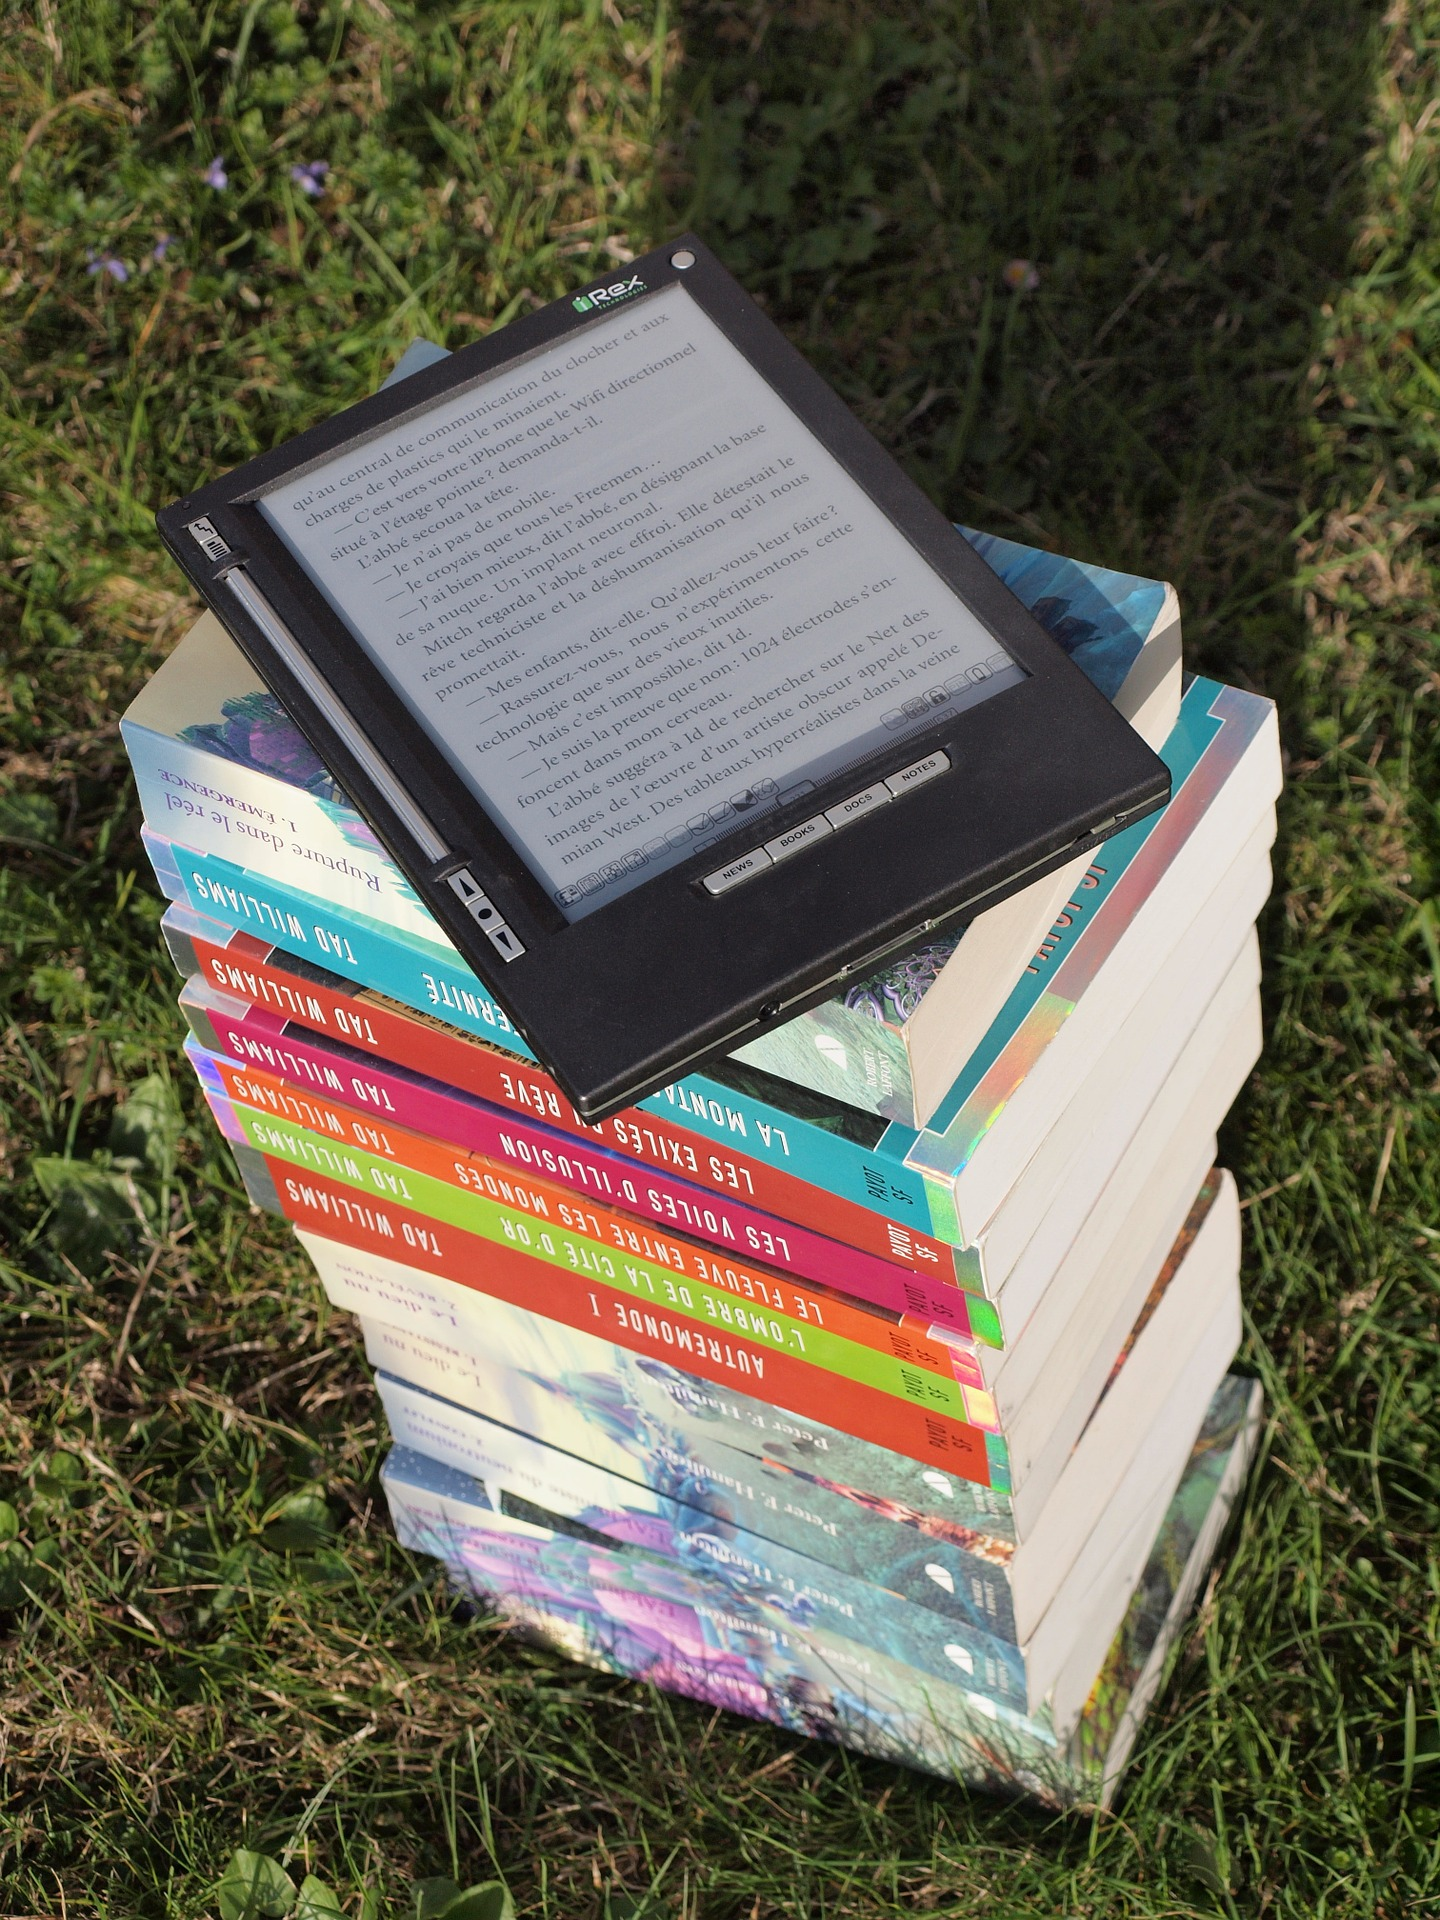 Your eReader replaces are those heavy books you had to lug around